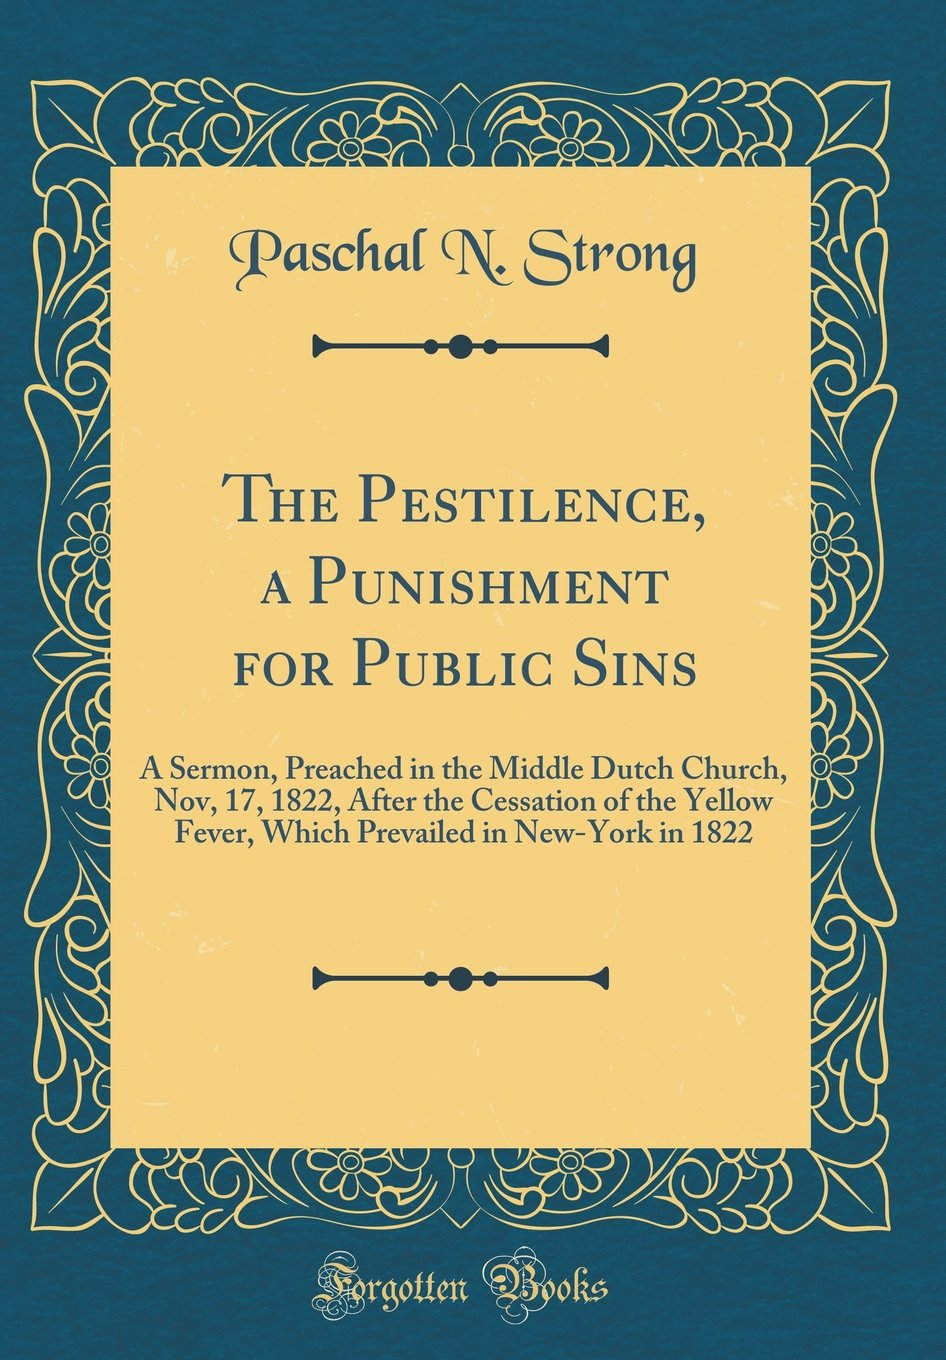 The Pestilence, a Punishment for Public Sins: A Sermon, Preached in the Middle Dutch Church, Nov, 17, 1822, After the Cessation of the Yellow Fever, ... in New-York in 1822 (Classic Reprint) ebook